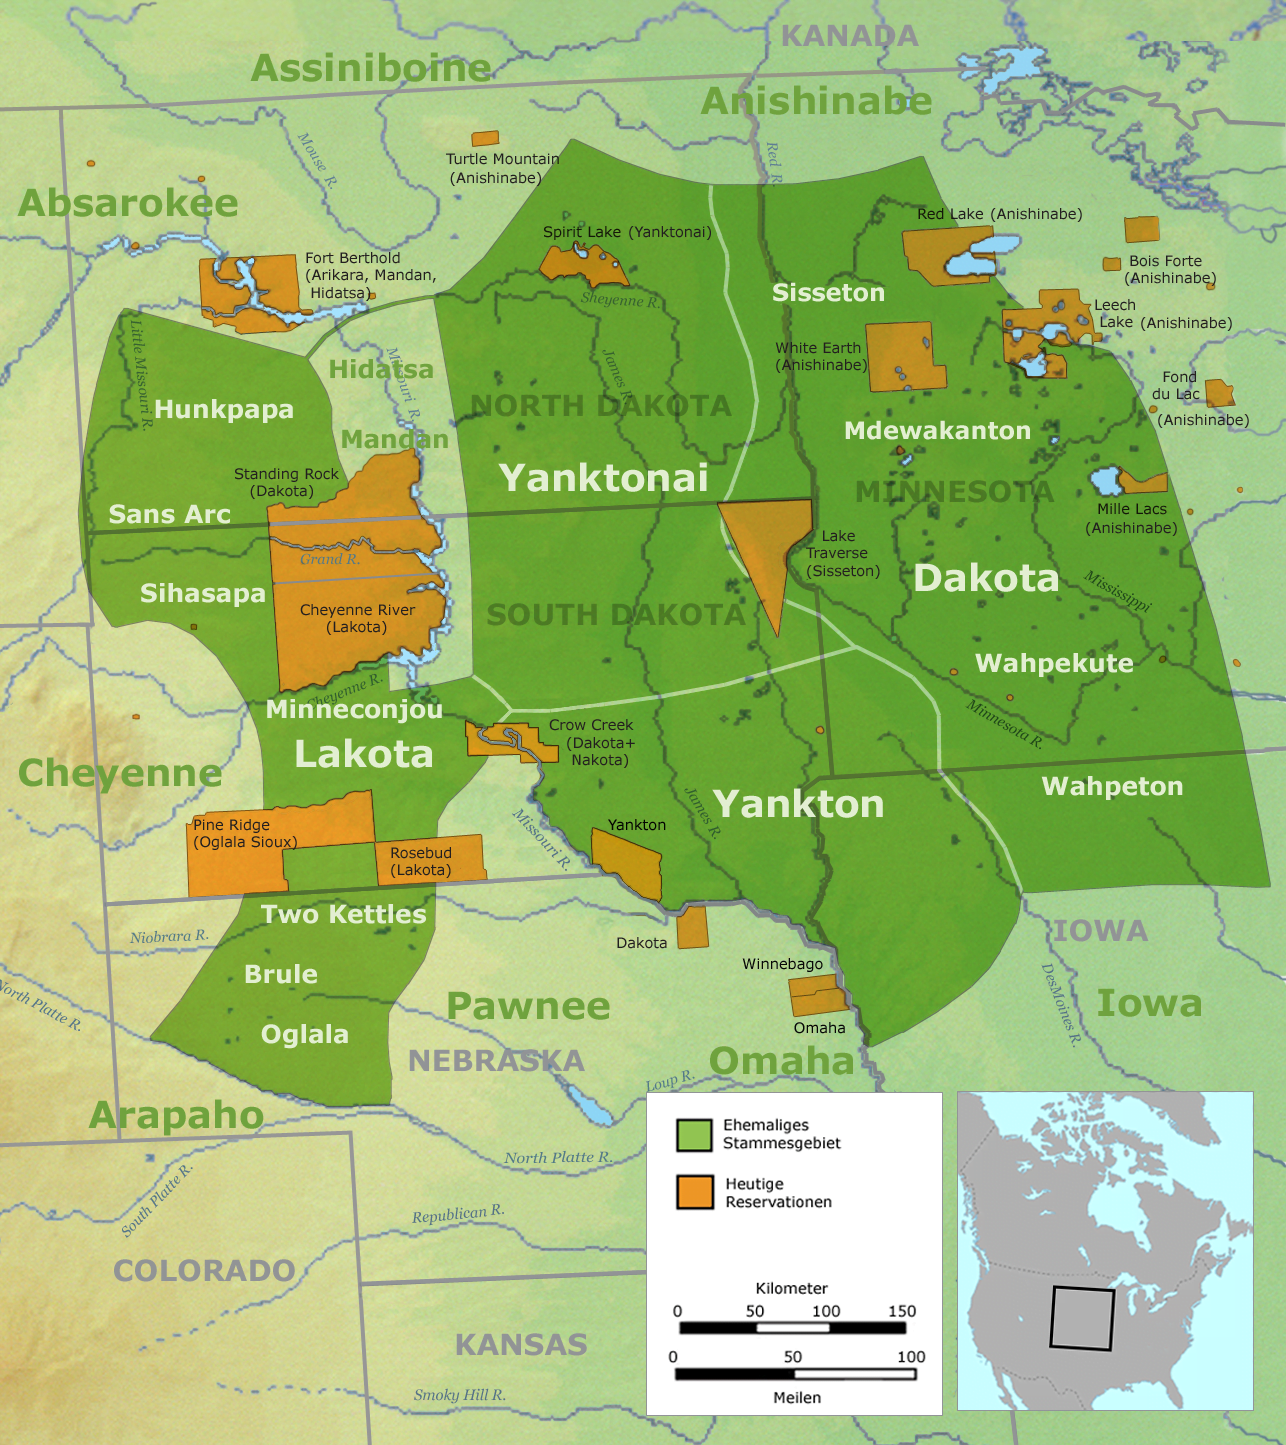 how warlike were the sioux The sioux wars were a series of conflicts between the united states and various  subgroups of the sioux people which occurred in the later half of the 19th.